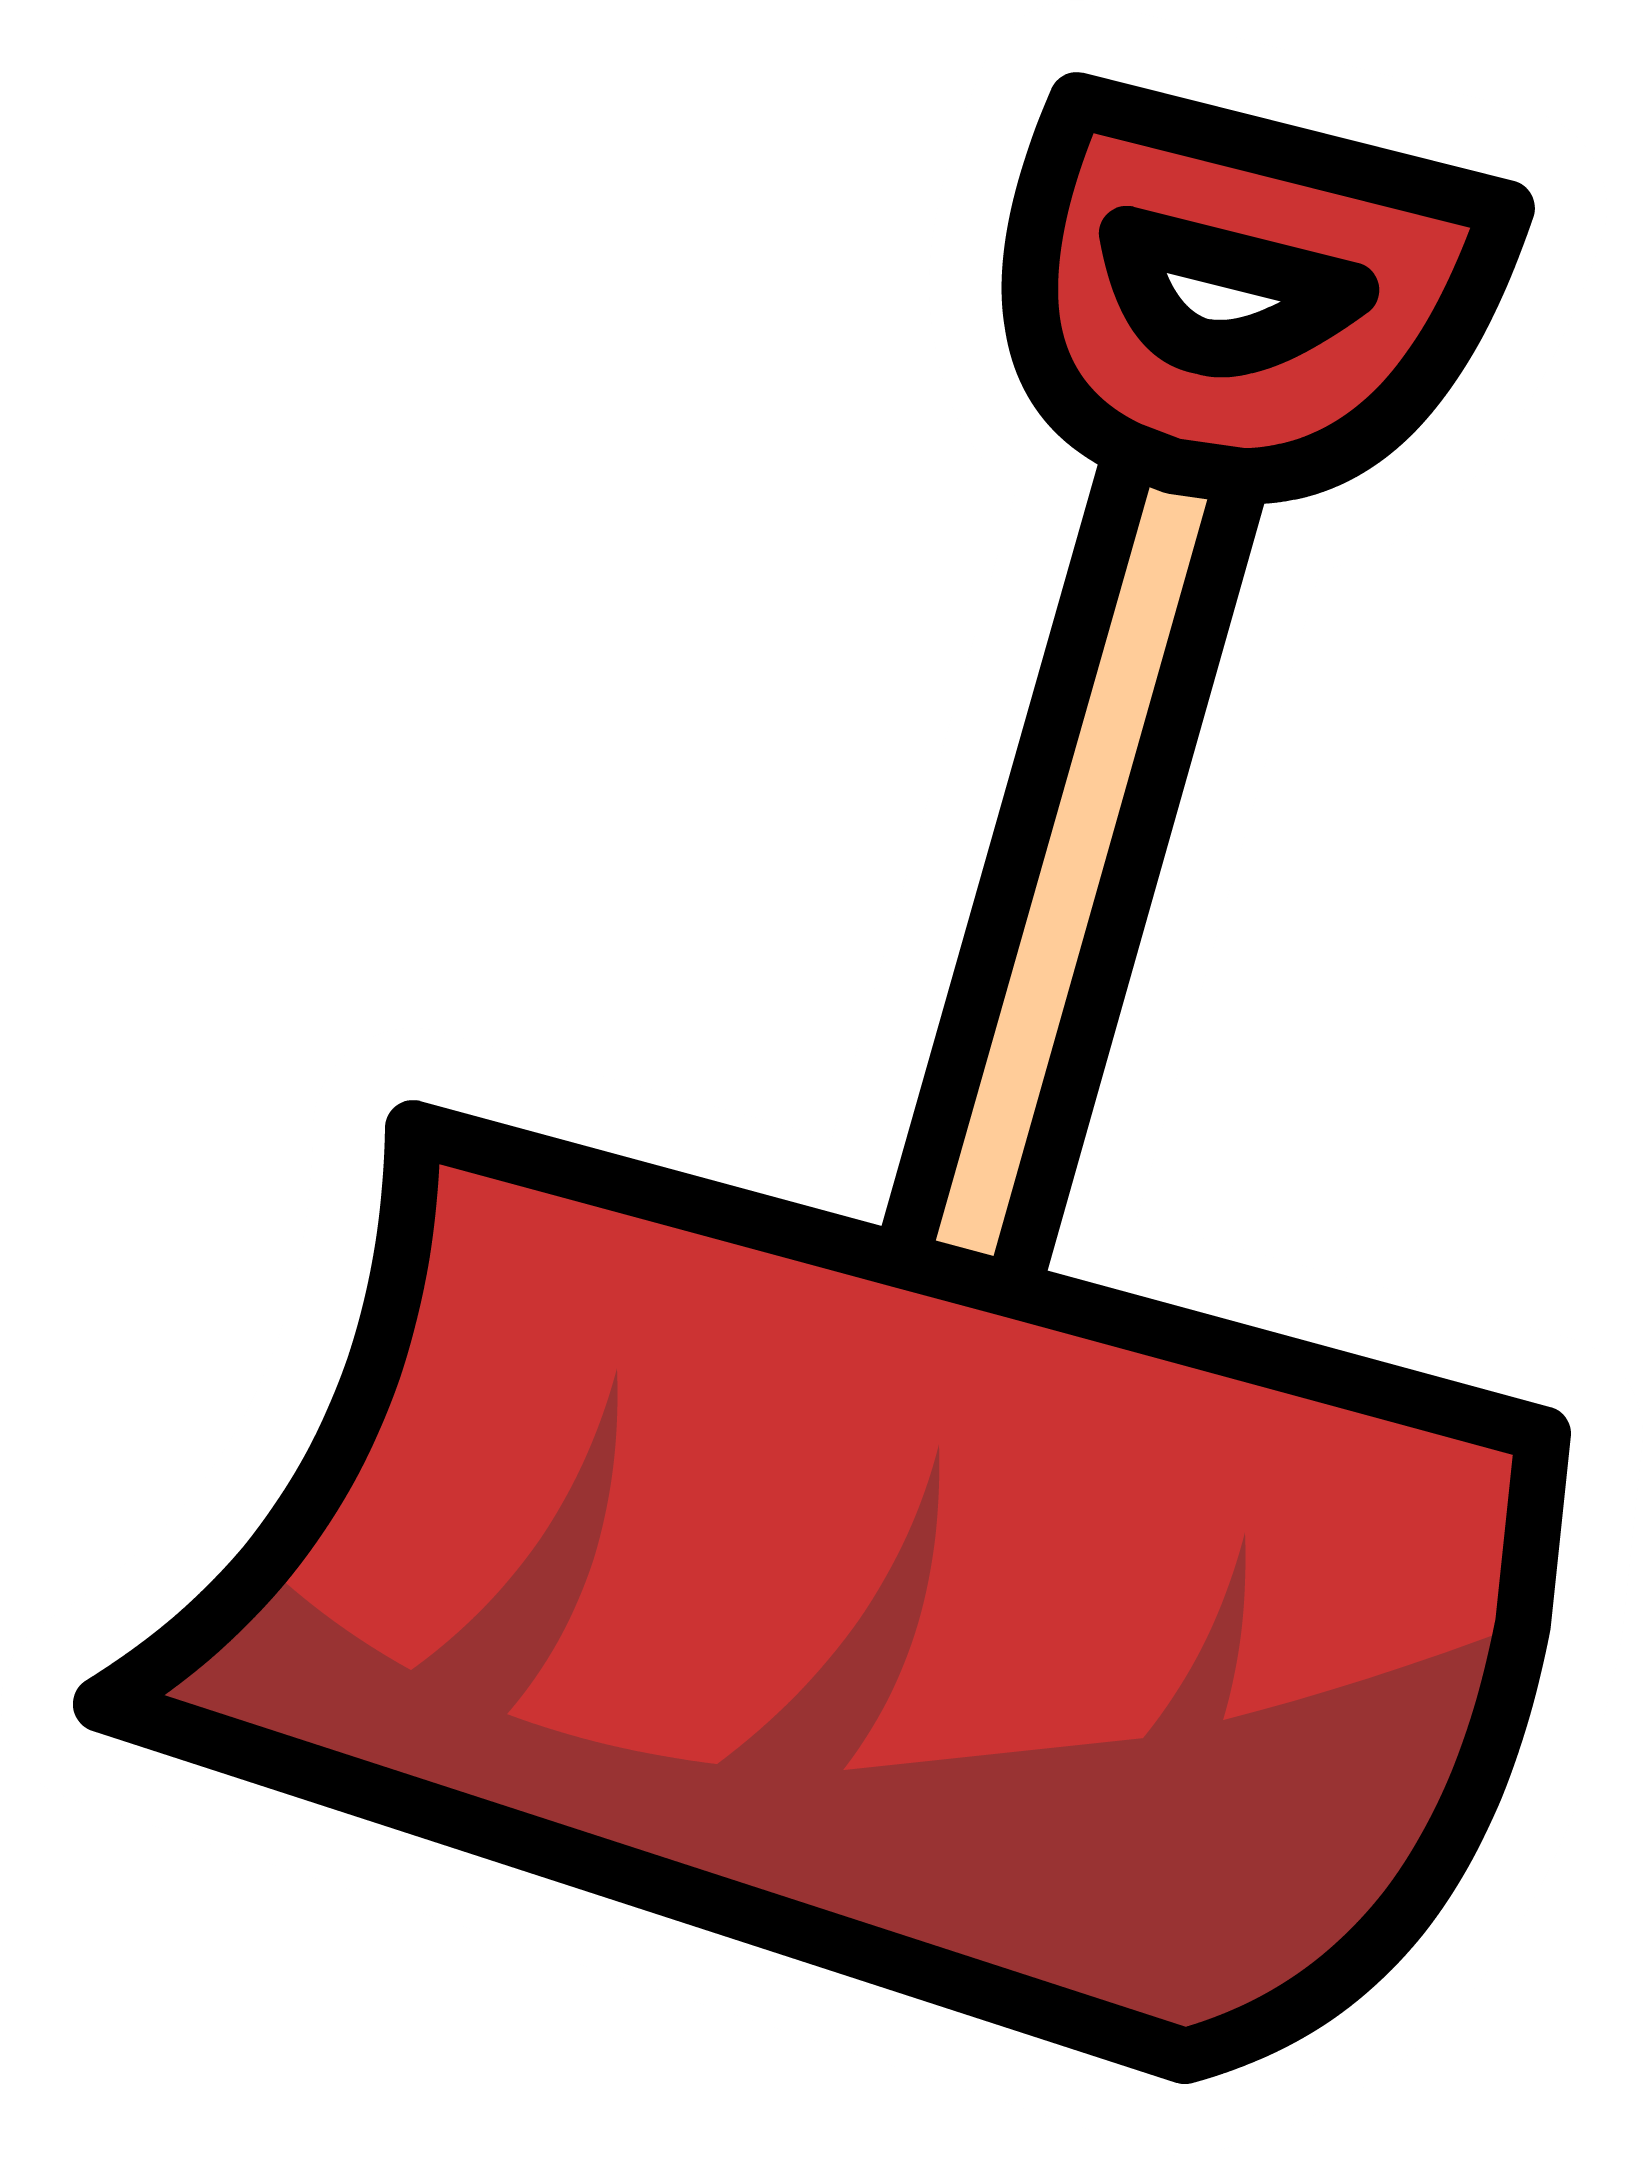 Free Snow Shovel Pictures, Download Free Clip Art, Free Clip.